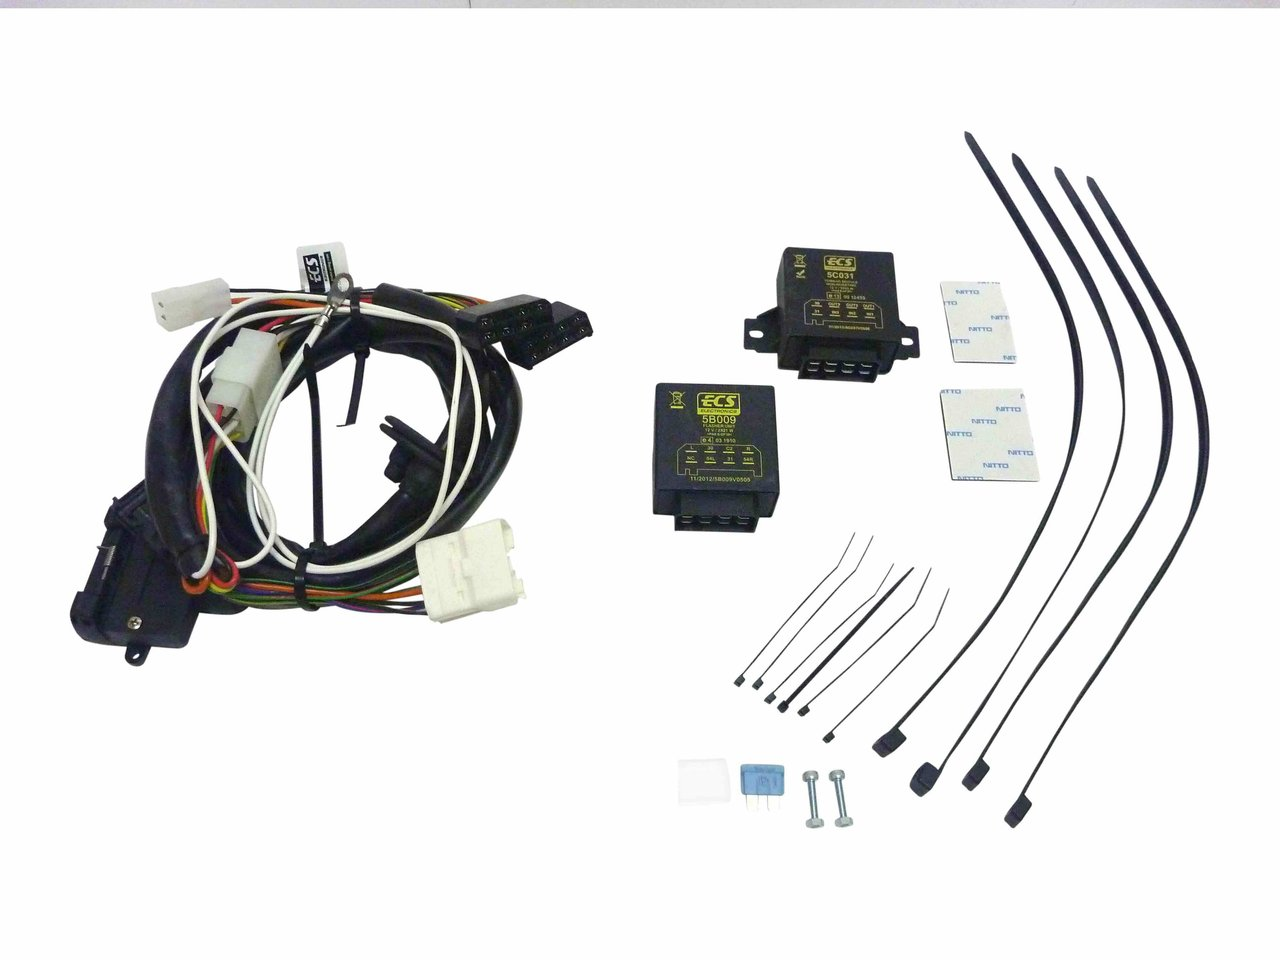 ford f150 tow package wiring diagram images further 2013 ford f ford f 150 tow package wiring harness together 150cc gy6 wiring